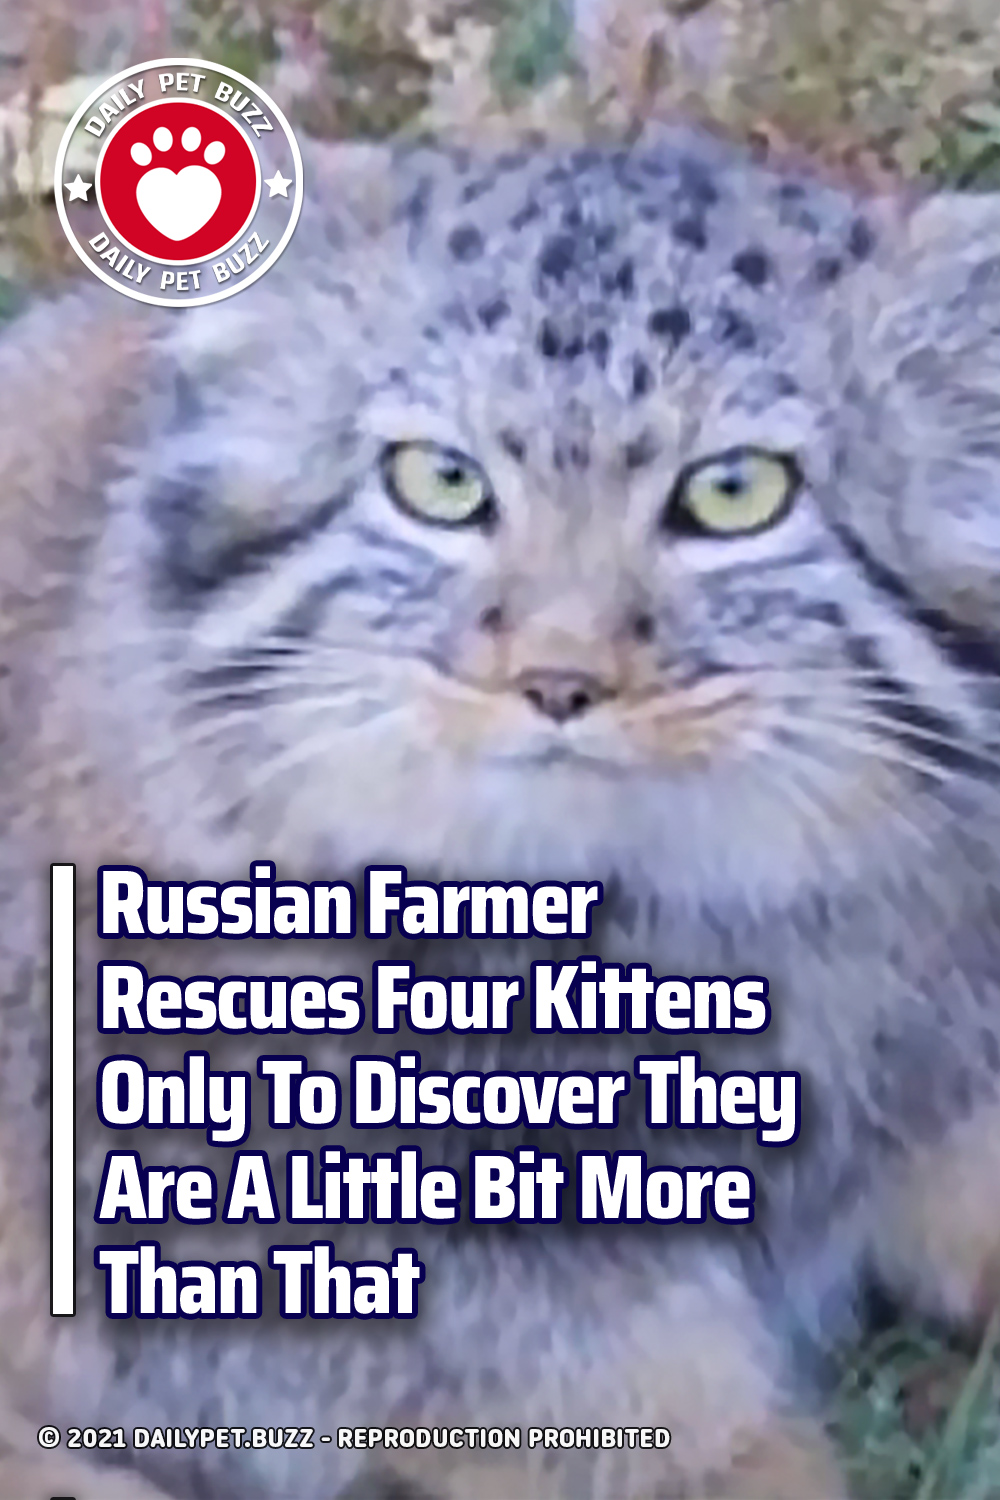 Russian Farmer Rescues Four Kittens Only To Discover They Are A Little Bit More Than That